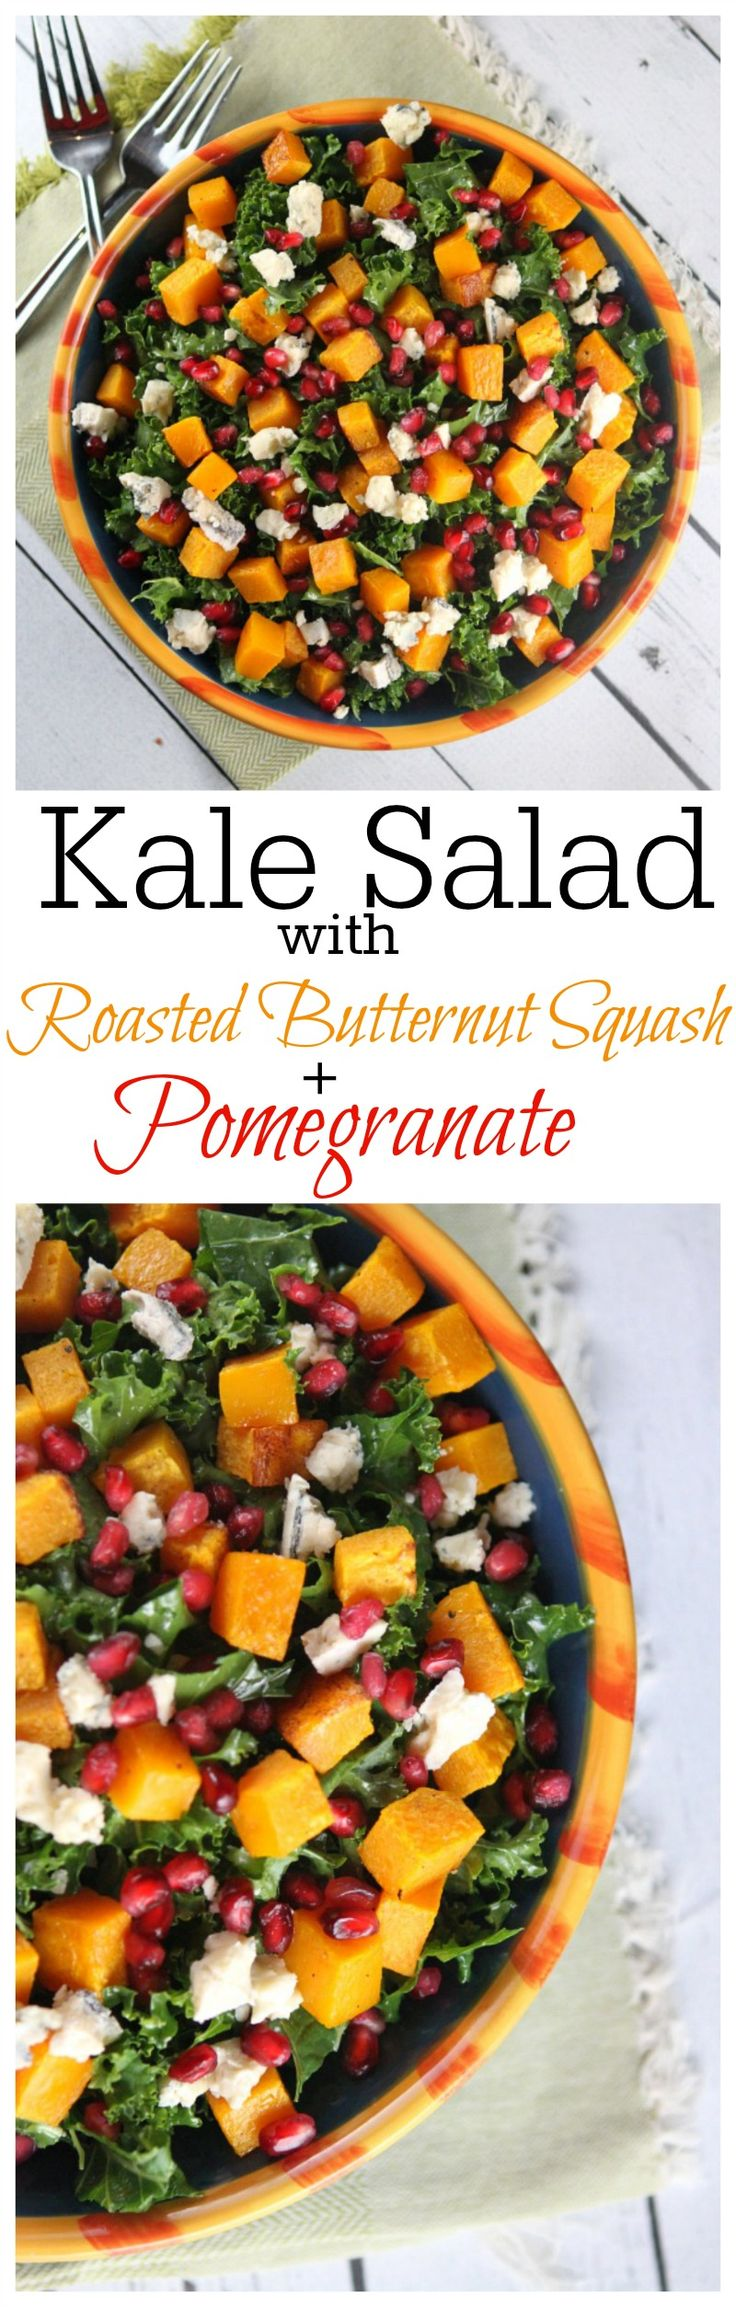 Pretty holiday salad recipe idea: Kale Salad with Roasted Butternut Squash and Pomegranate seeds tossed in a Honey-Cider Vinaigrette